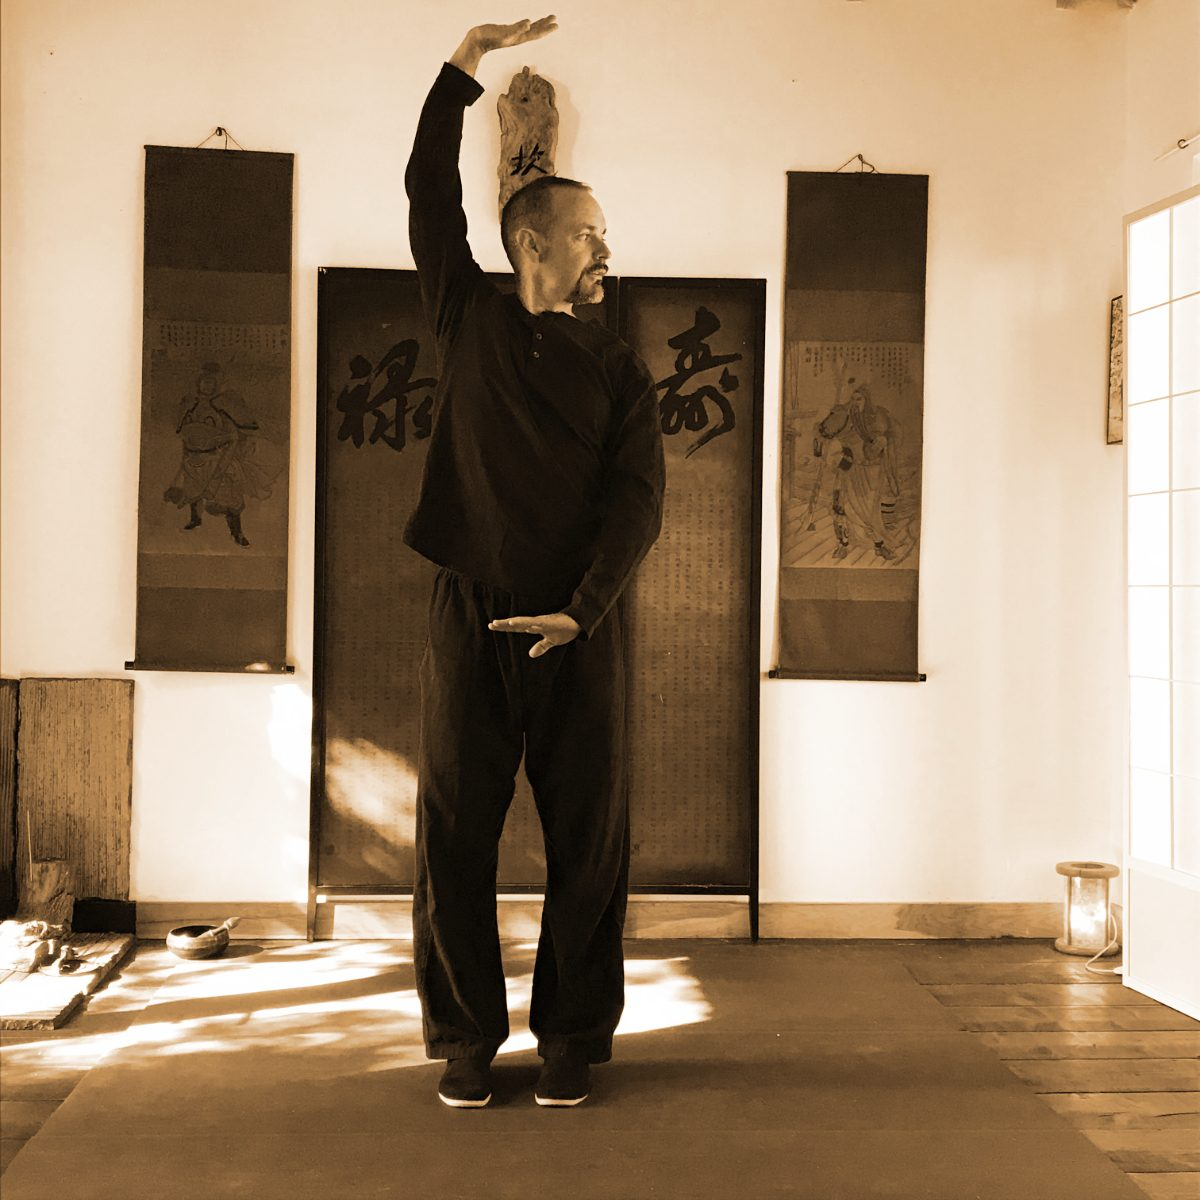 Chi Kiung for Health and Wellbeing